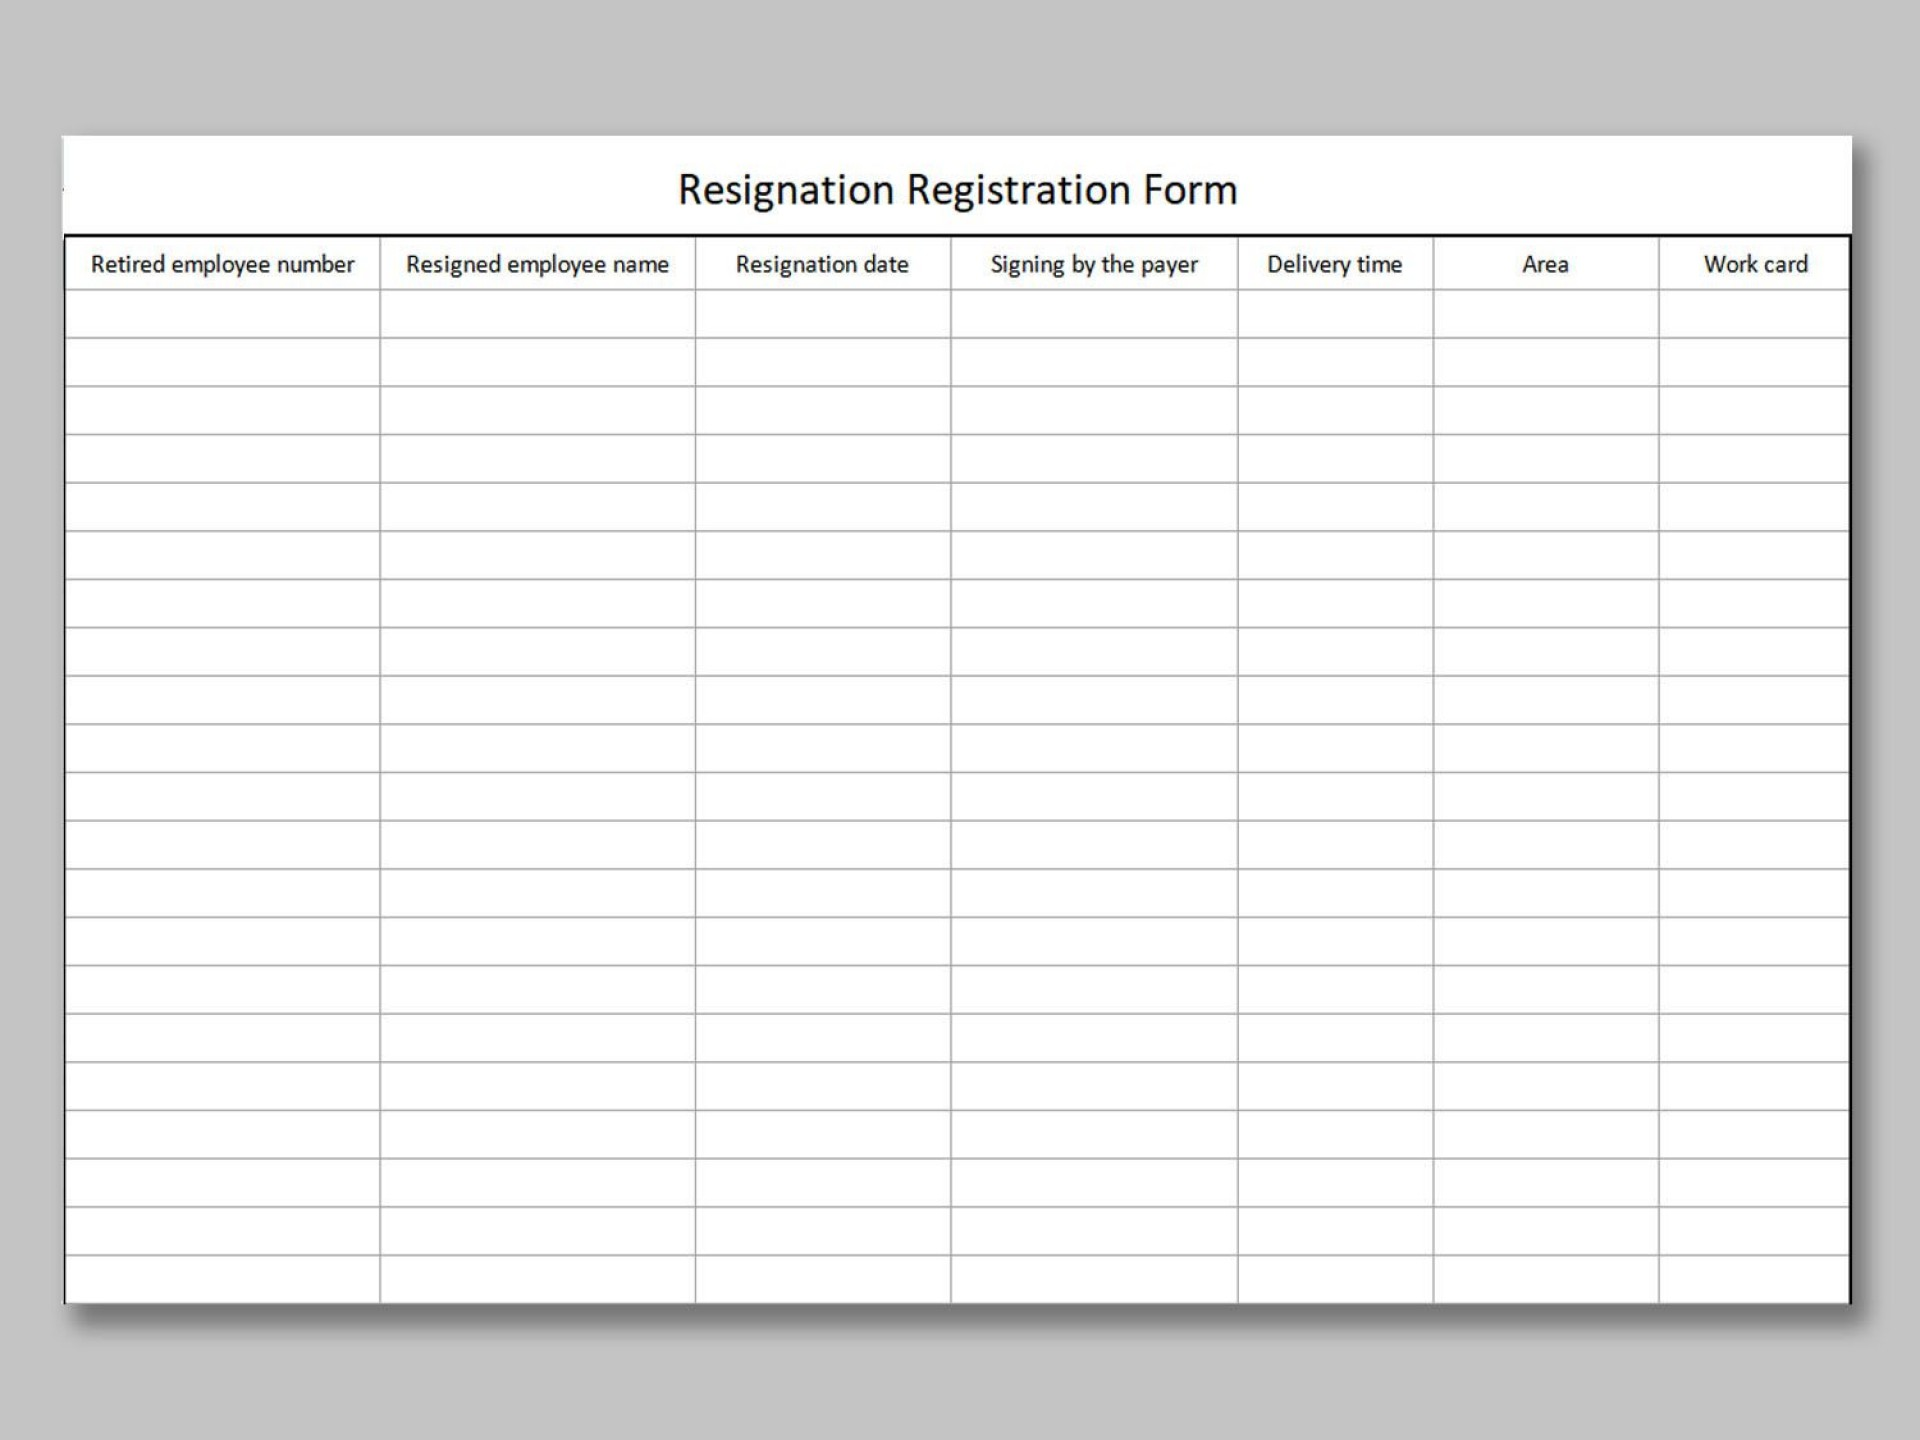 001 Archaicawful Registration Form Template Free Download Sample  Bootstrap Student W3layout In Php1920